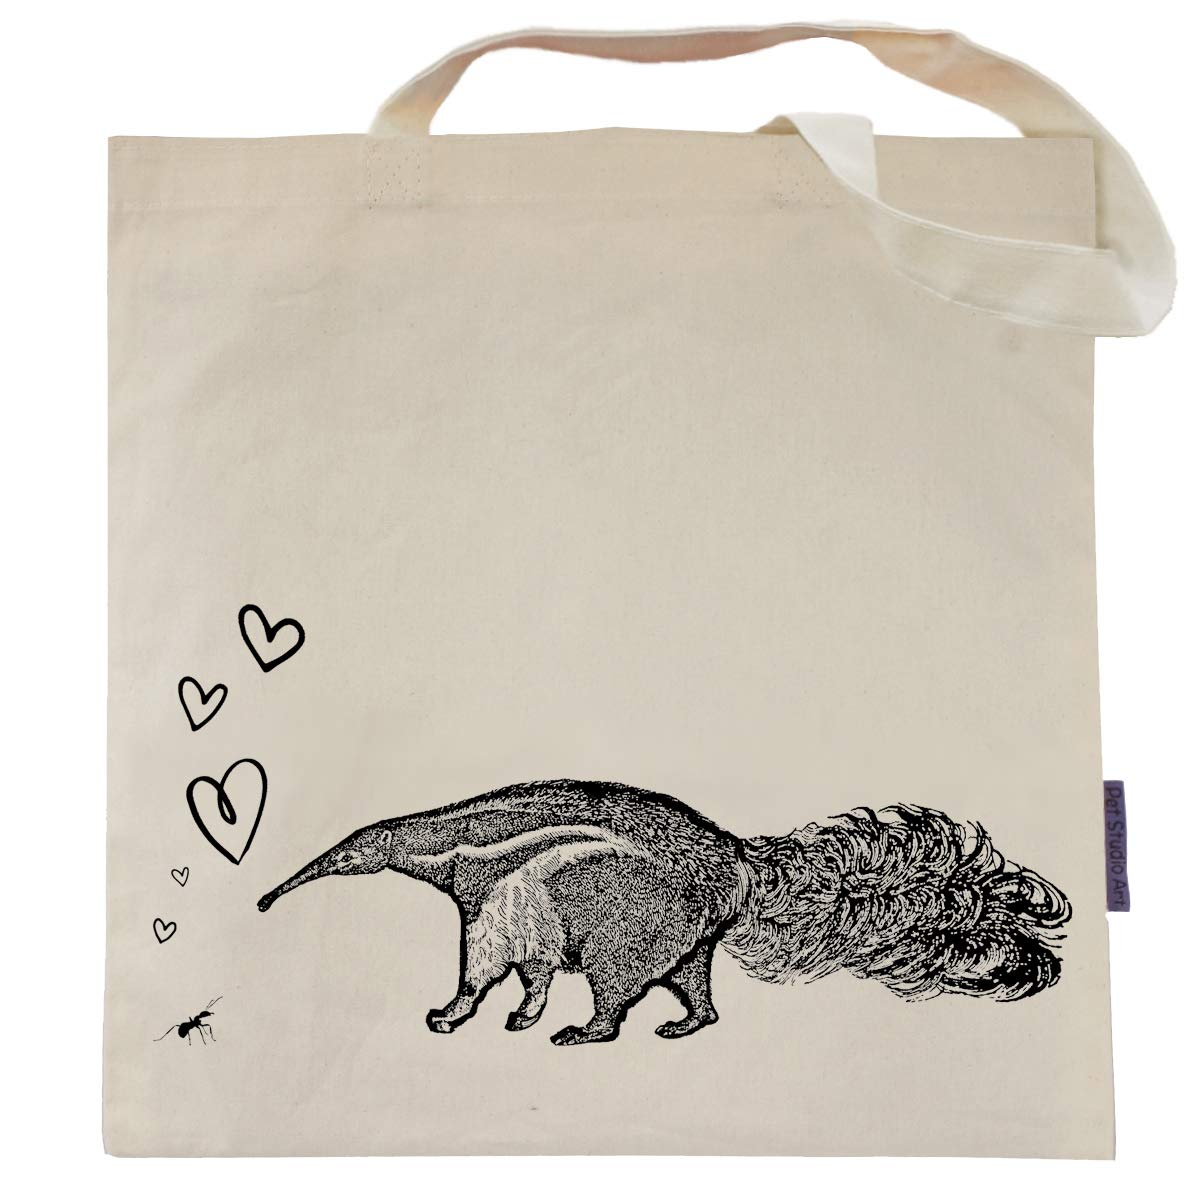 Amazon.com: Pet Studio Art - Bolsas de animales y fauna ...